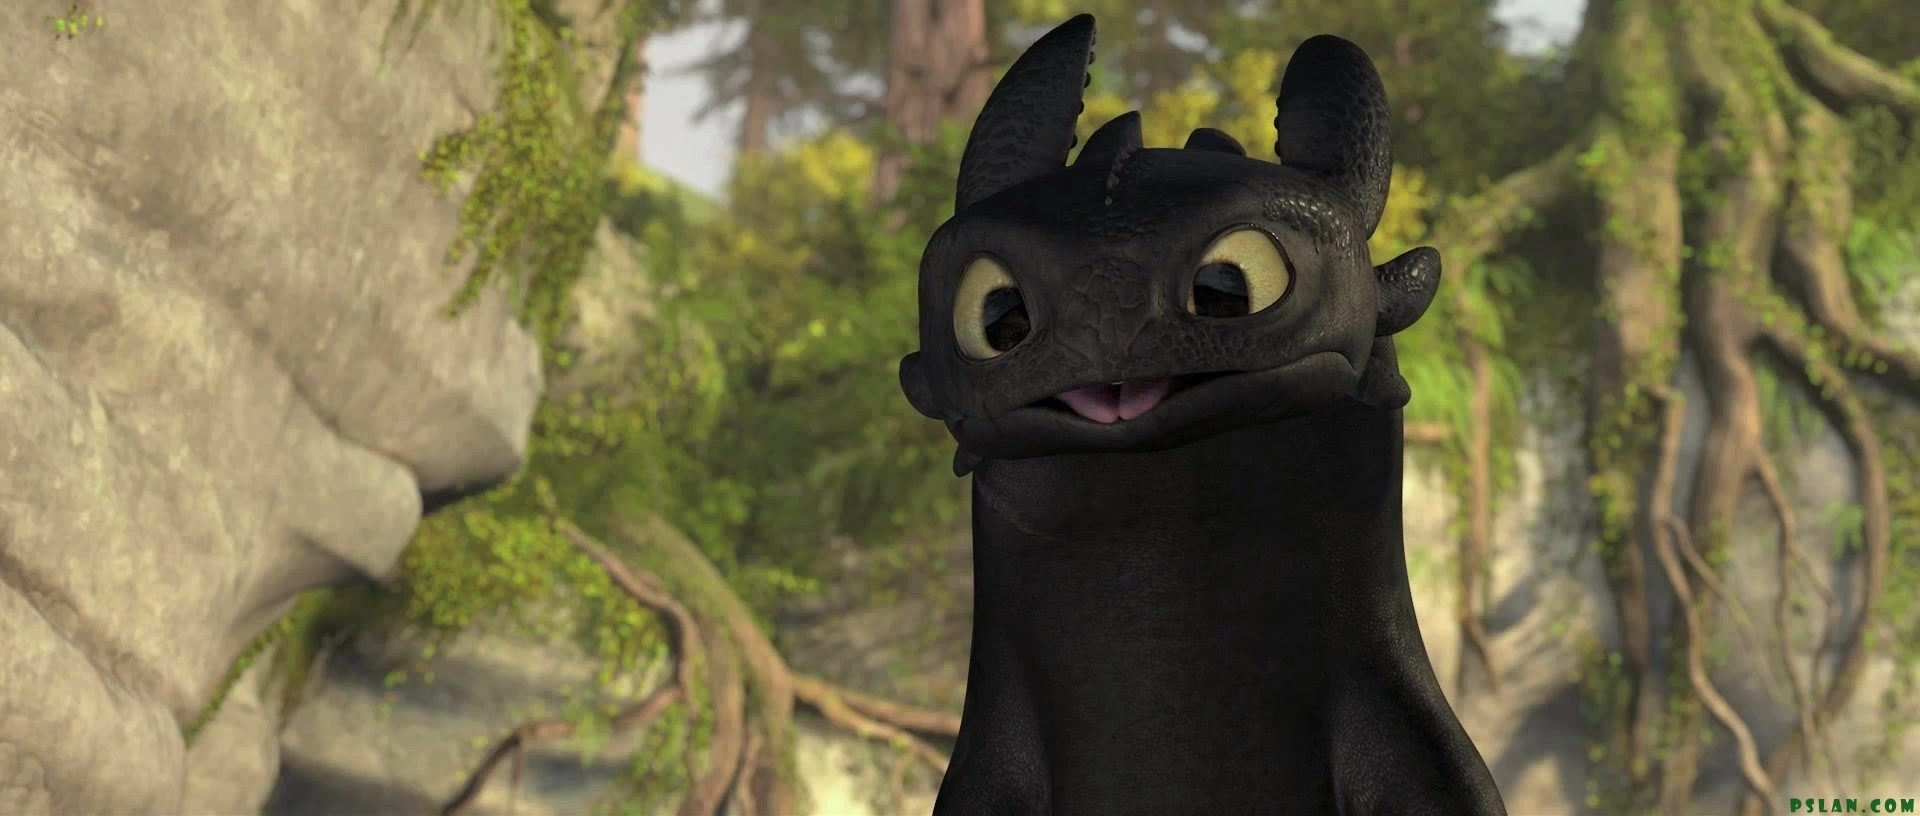 How to Train Your Dragon | Wed July 17 – 10:00am